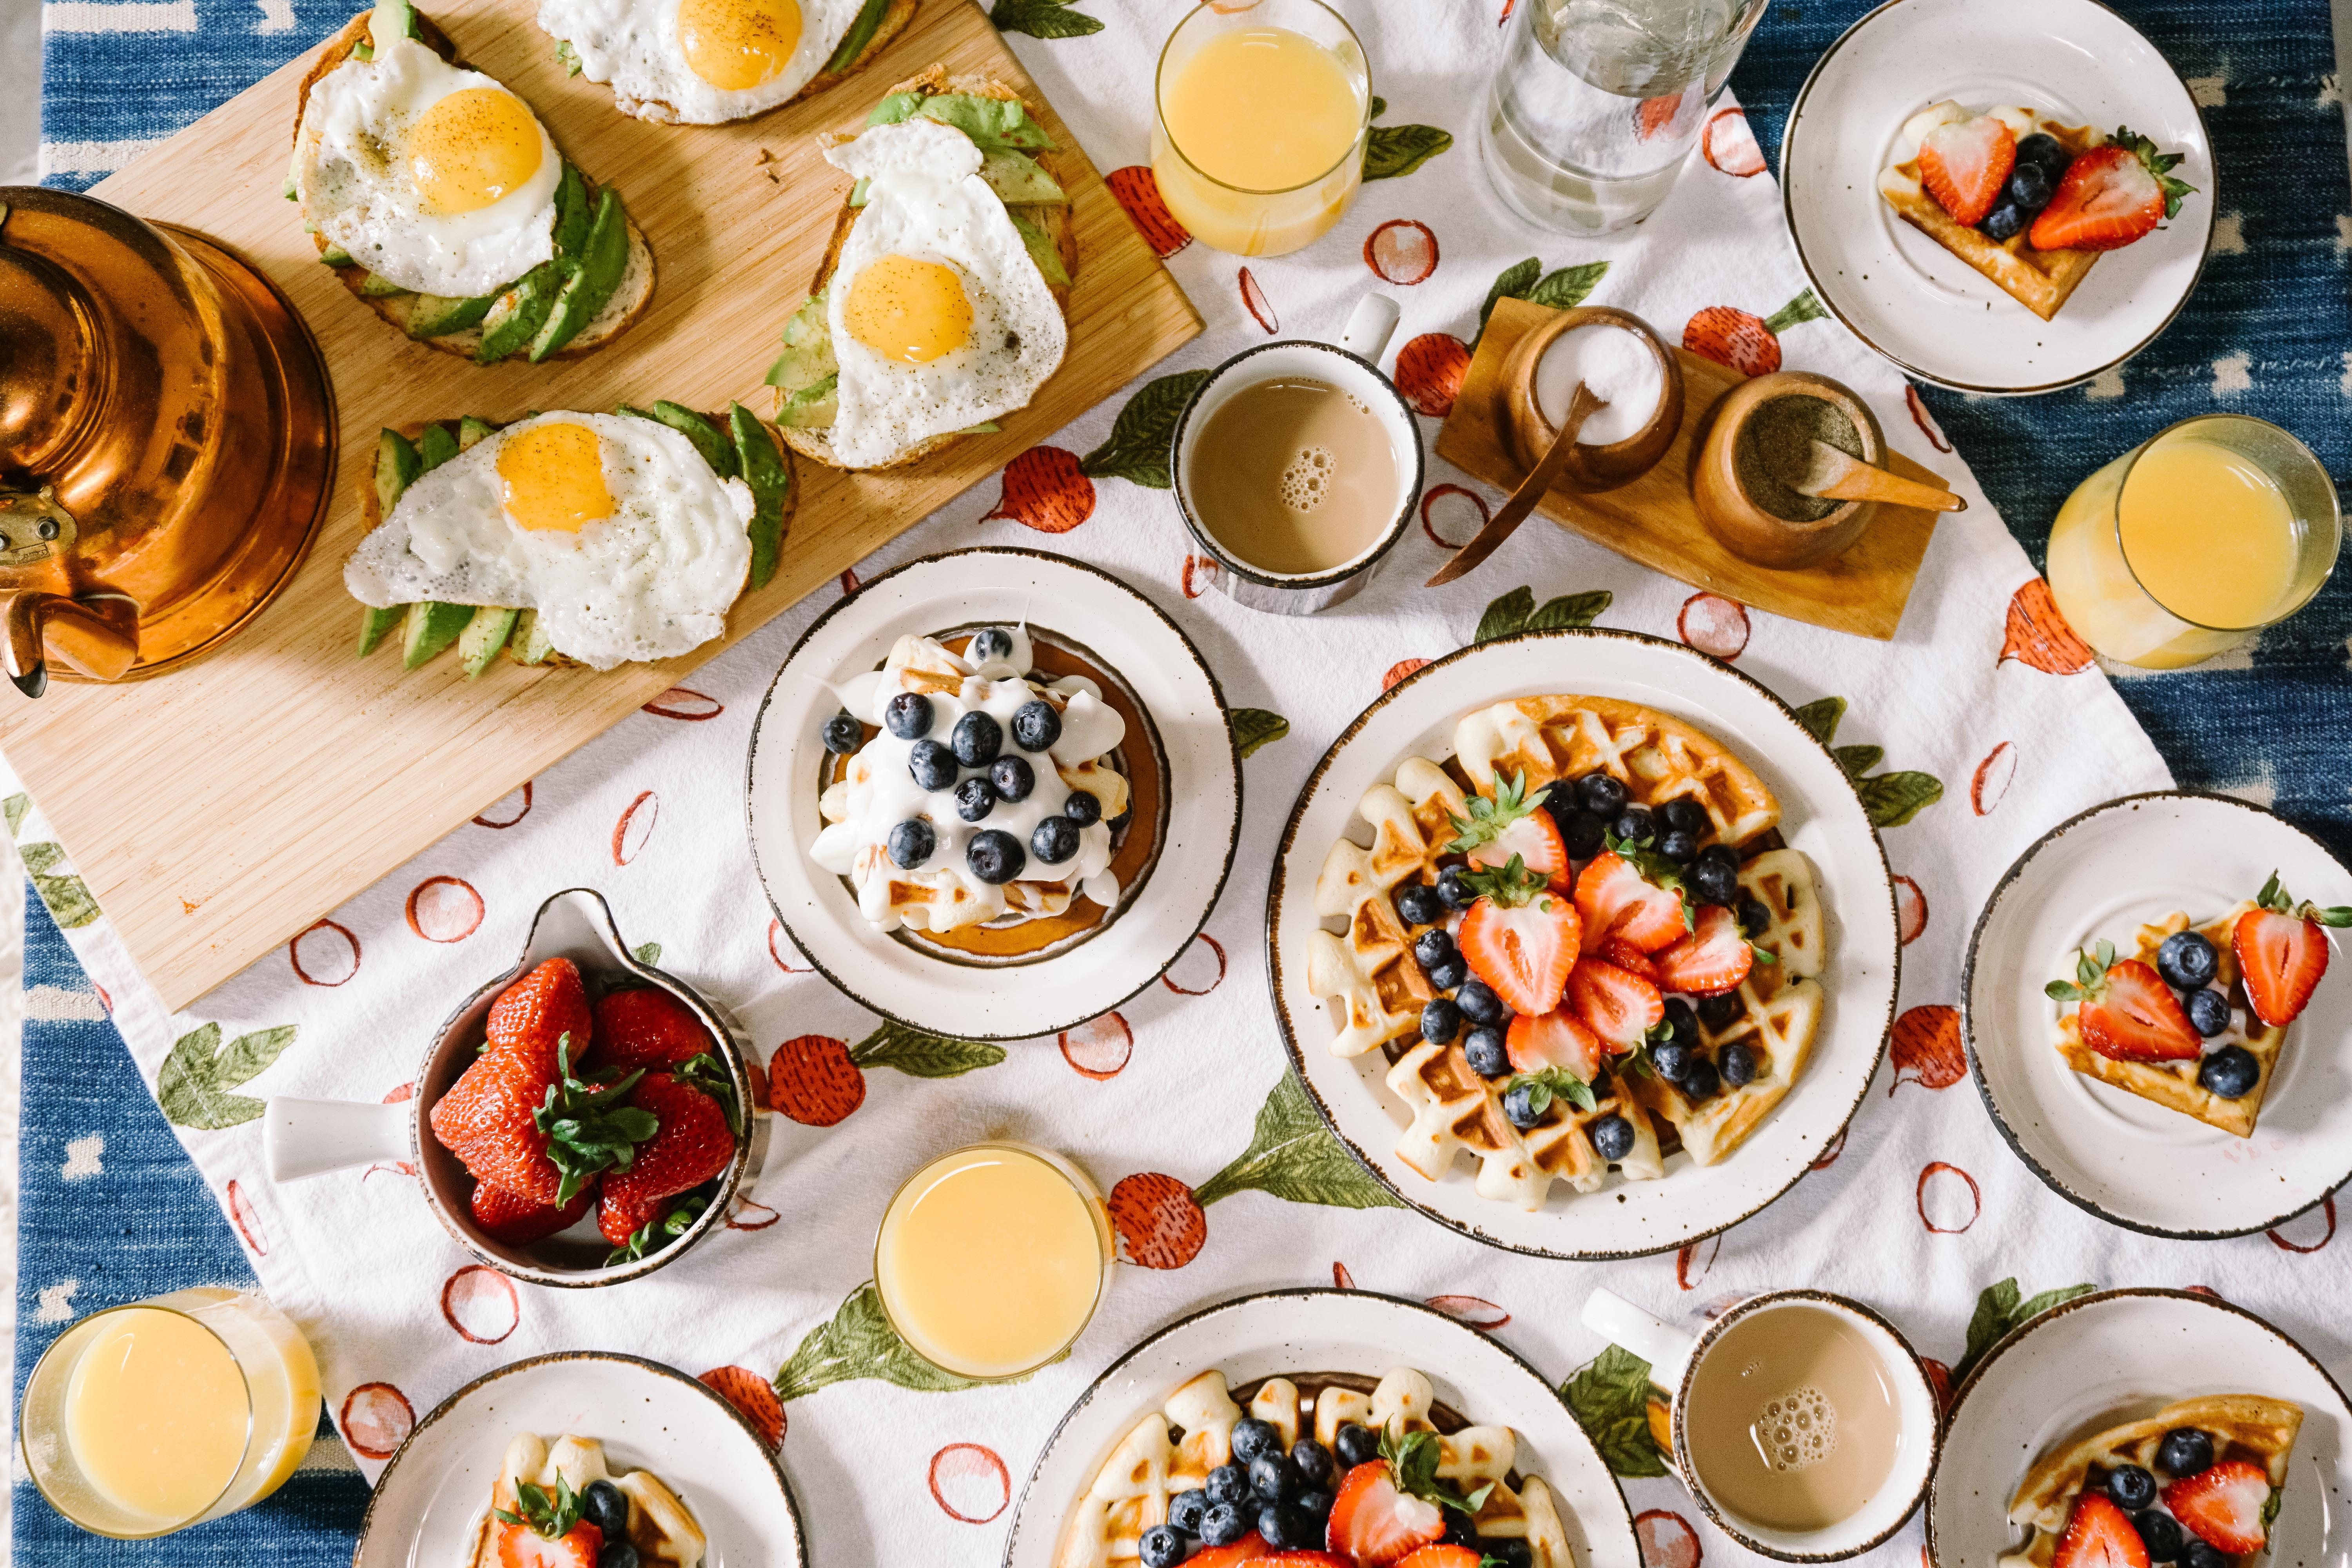 Waffels, fruits, coffee and fried eggs on small plates on a table.